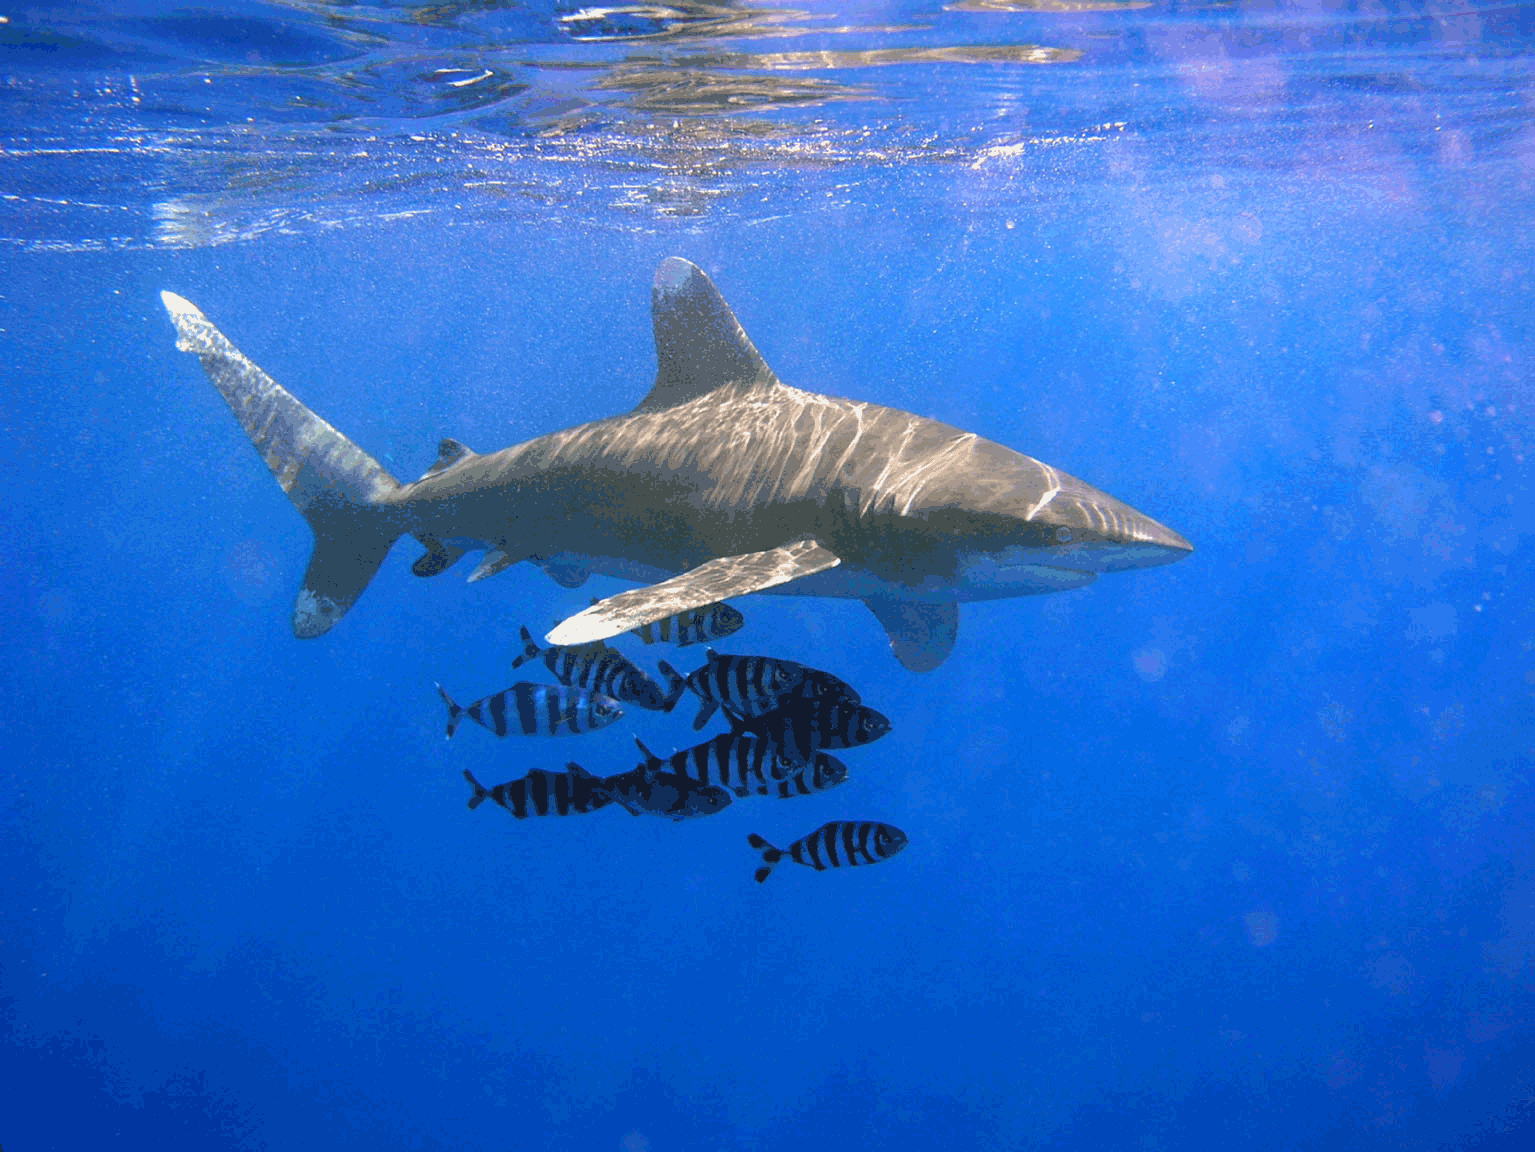 Oceanic whitetip shark wallpaper